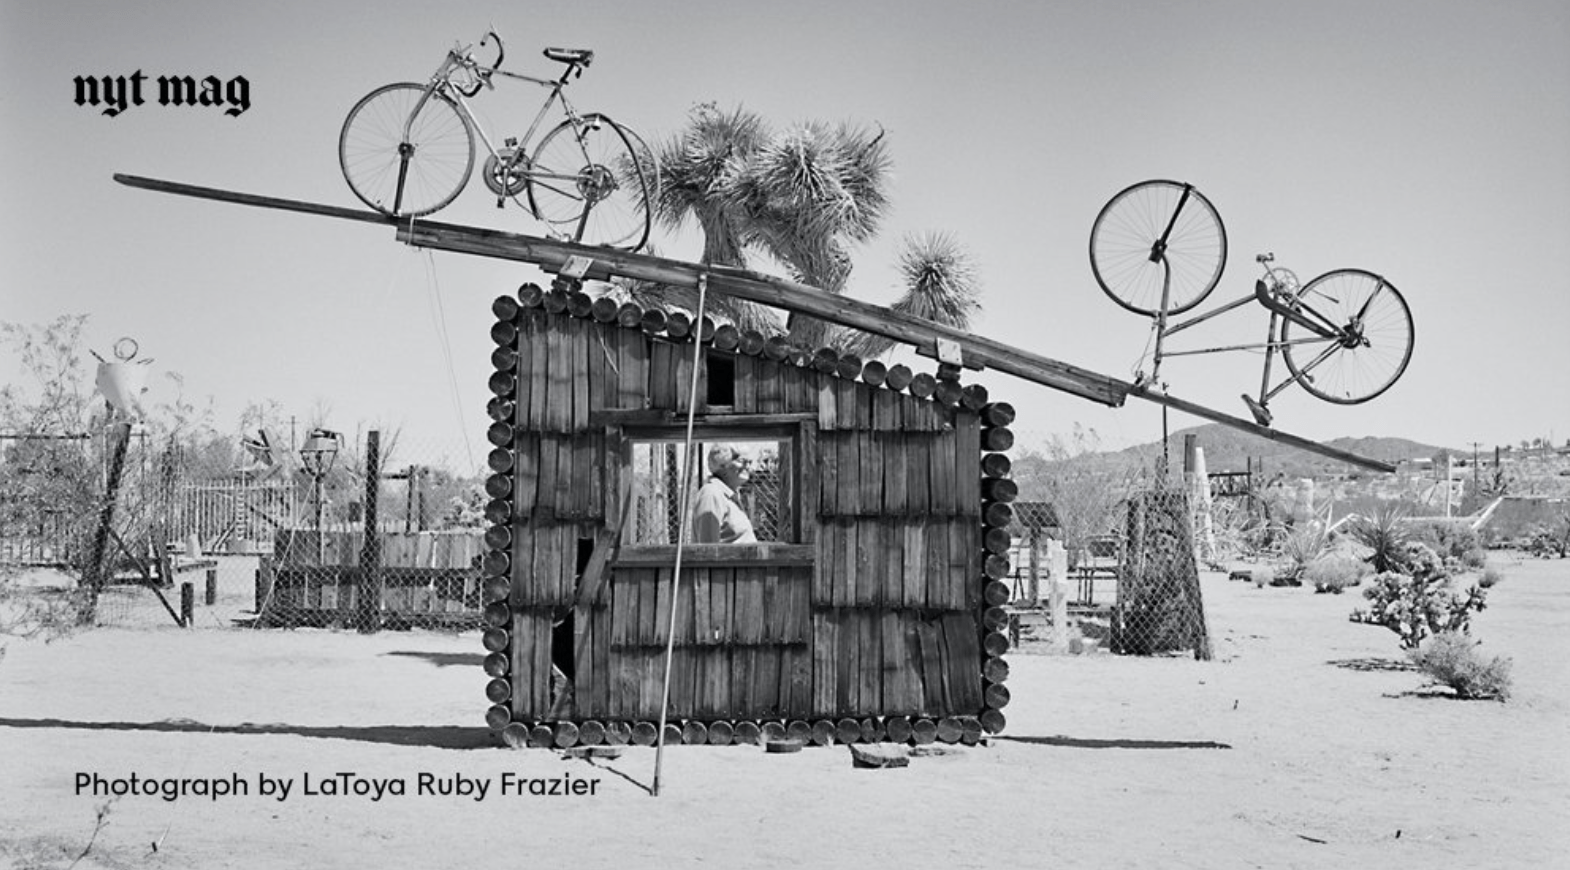 joshua-tree-outdoor-museum-by-latoya-ruby-frazier-for-nyt-mag